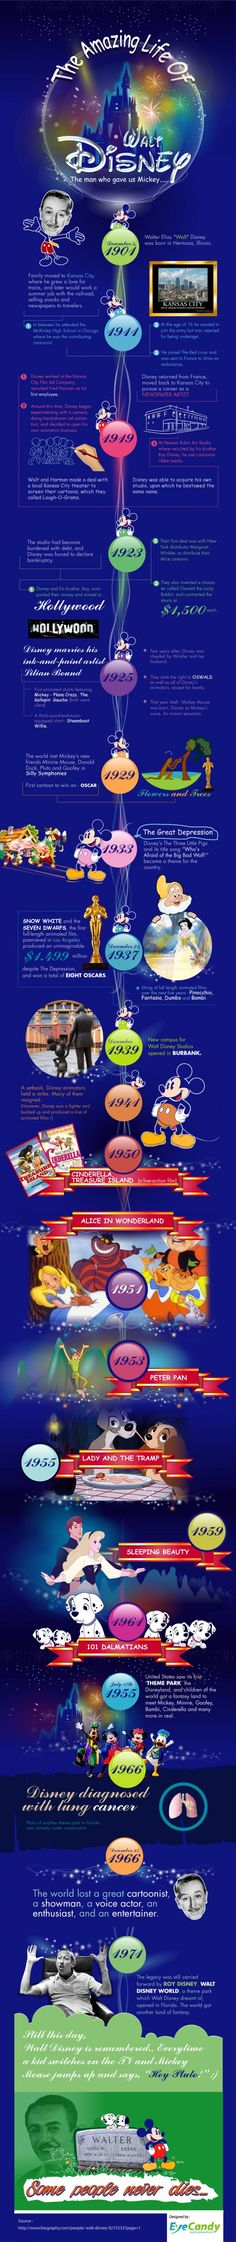 The Amazing Life of Walt Disney [Infographic] #disney #waltdisney